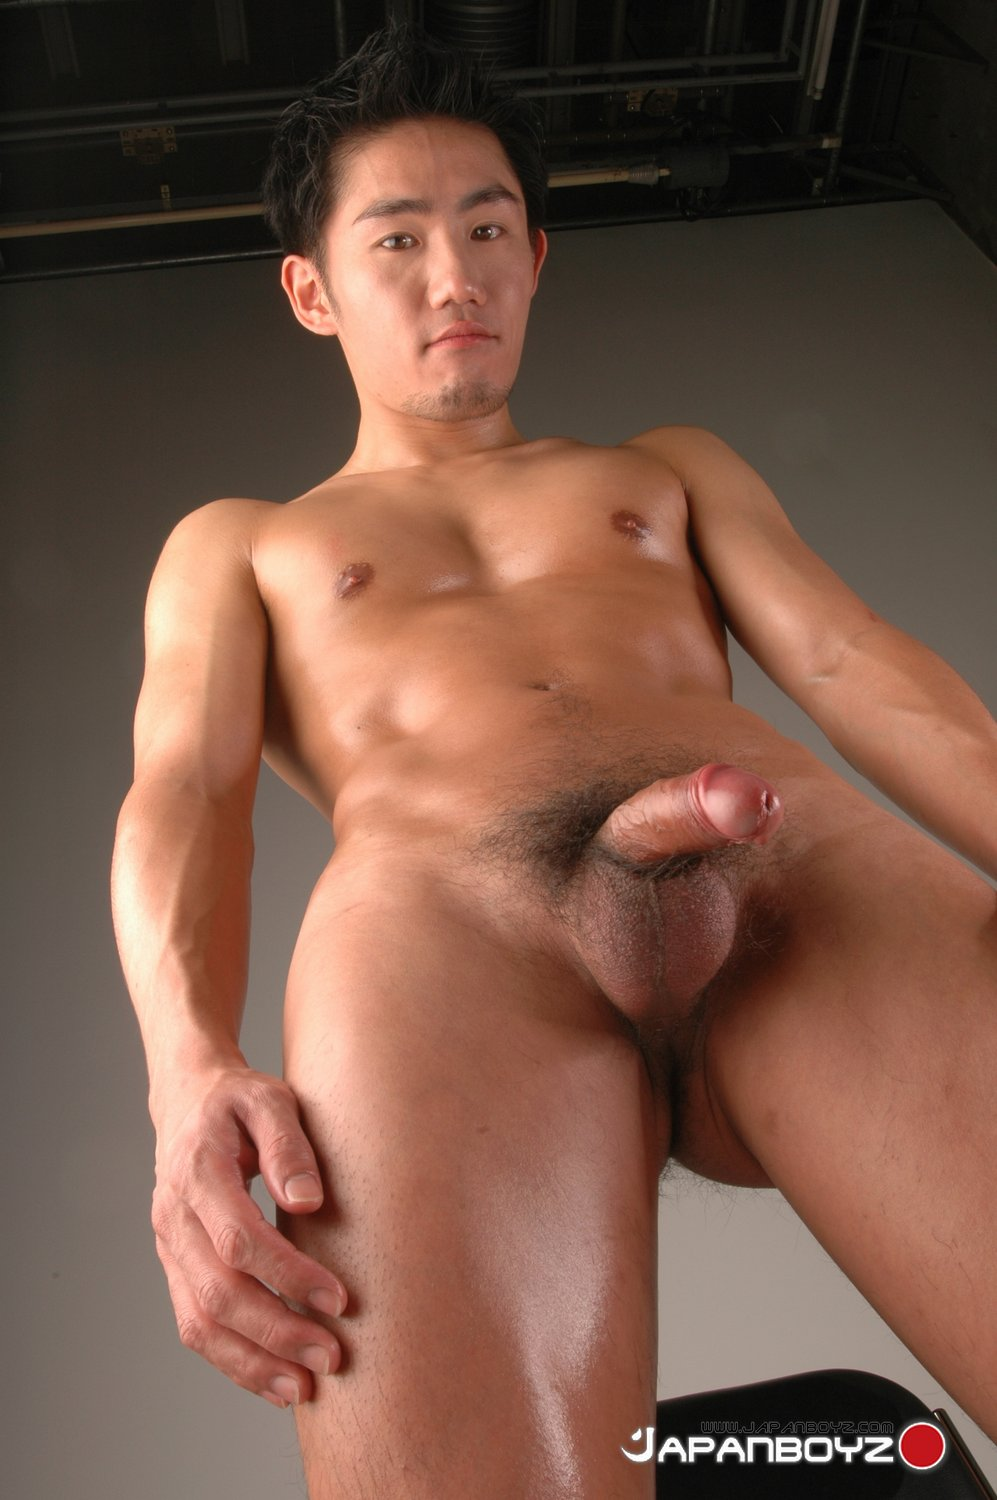 JapanBoyz Erotic Ninja 1 The Hitman 3 torrent asian 05 Asian Twink Gets Fucked Bareback with Cum in the Ass